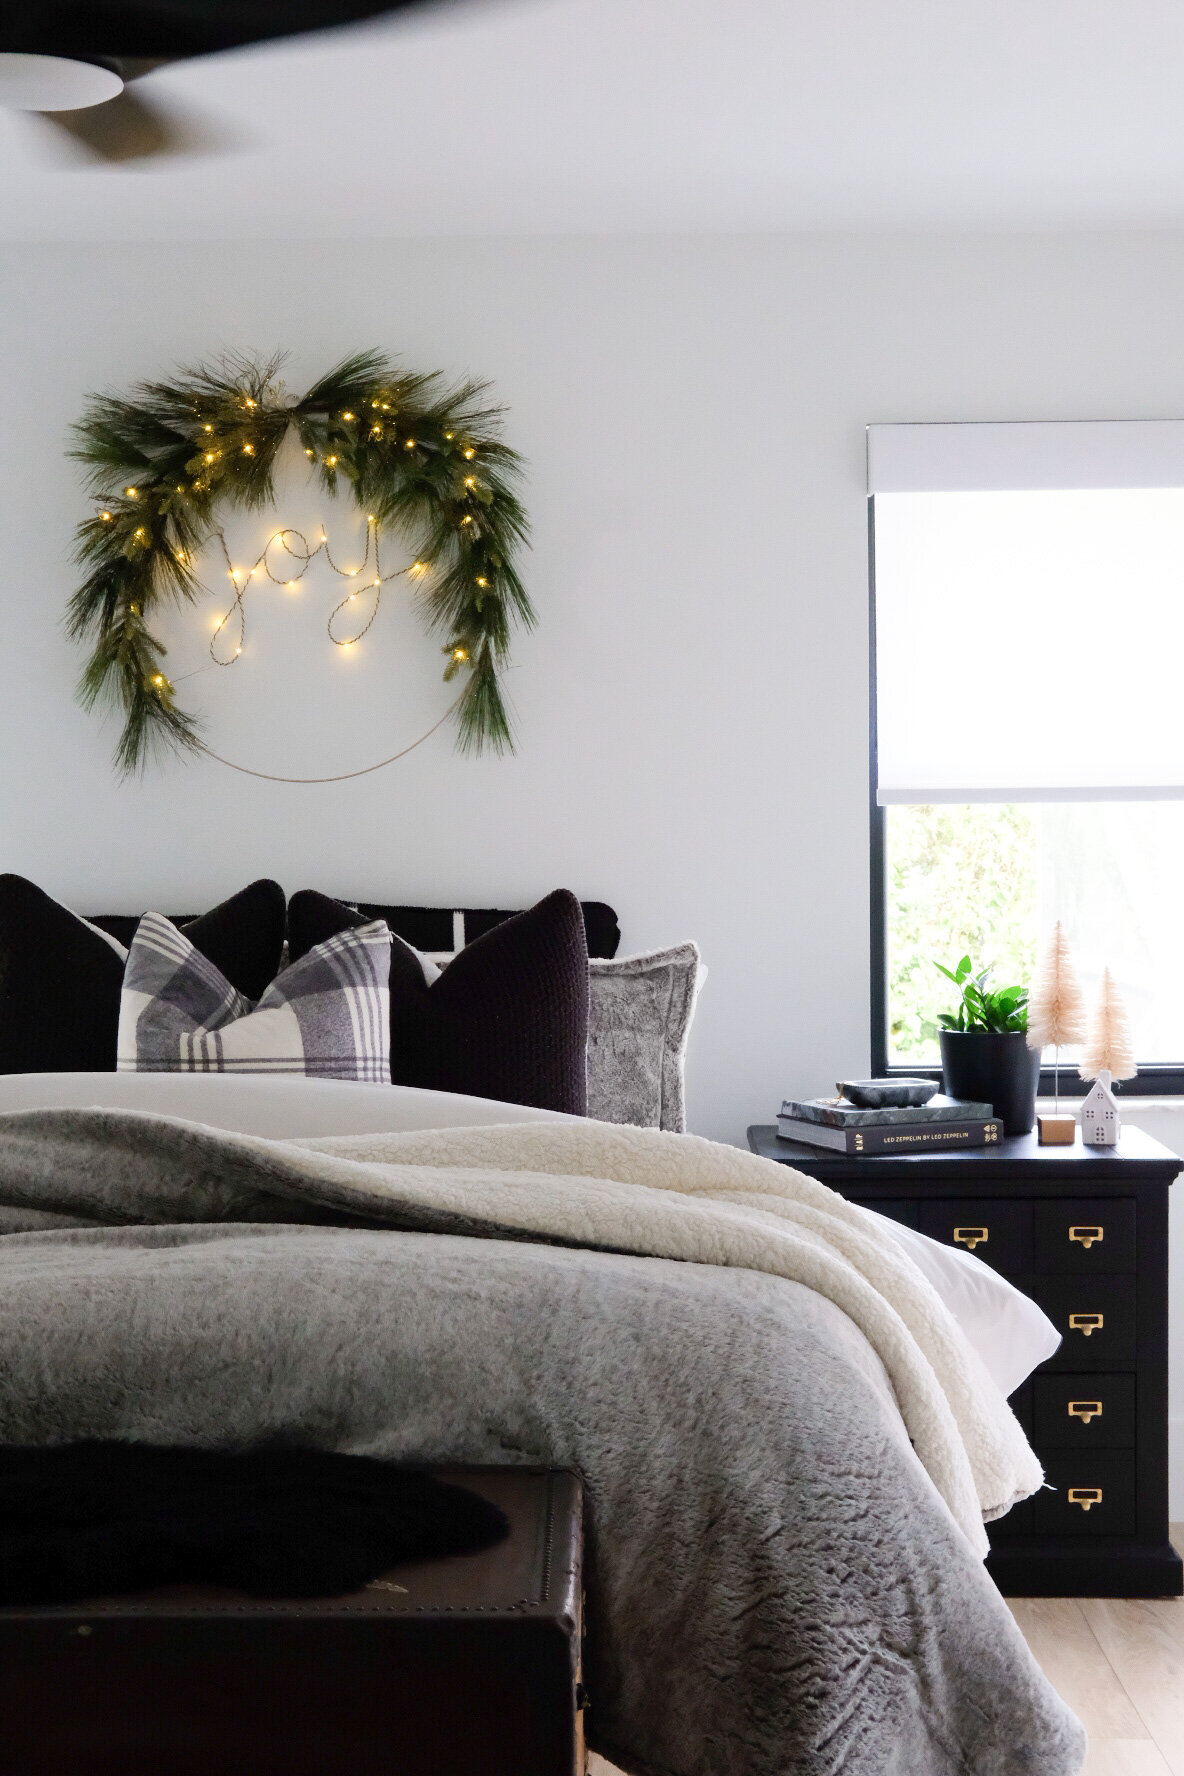 CHRISTMAS DECOR 10 // OUR MASTER BEDROOM — Me and Mr. Jones